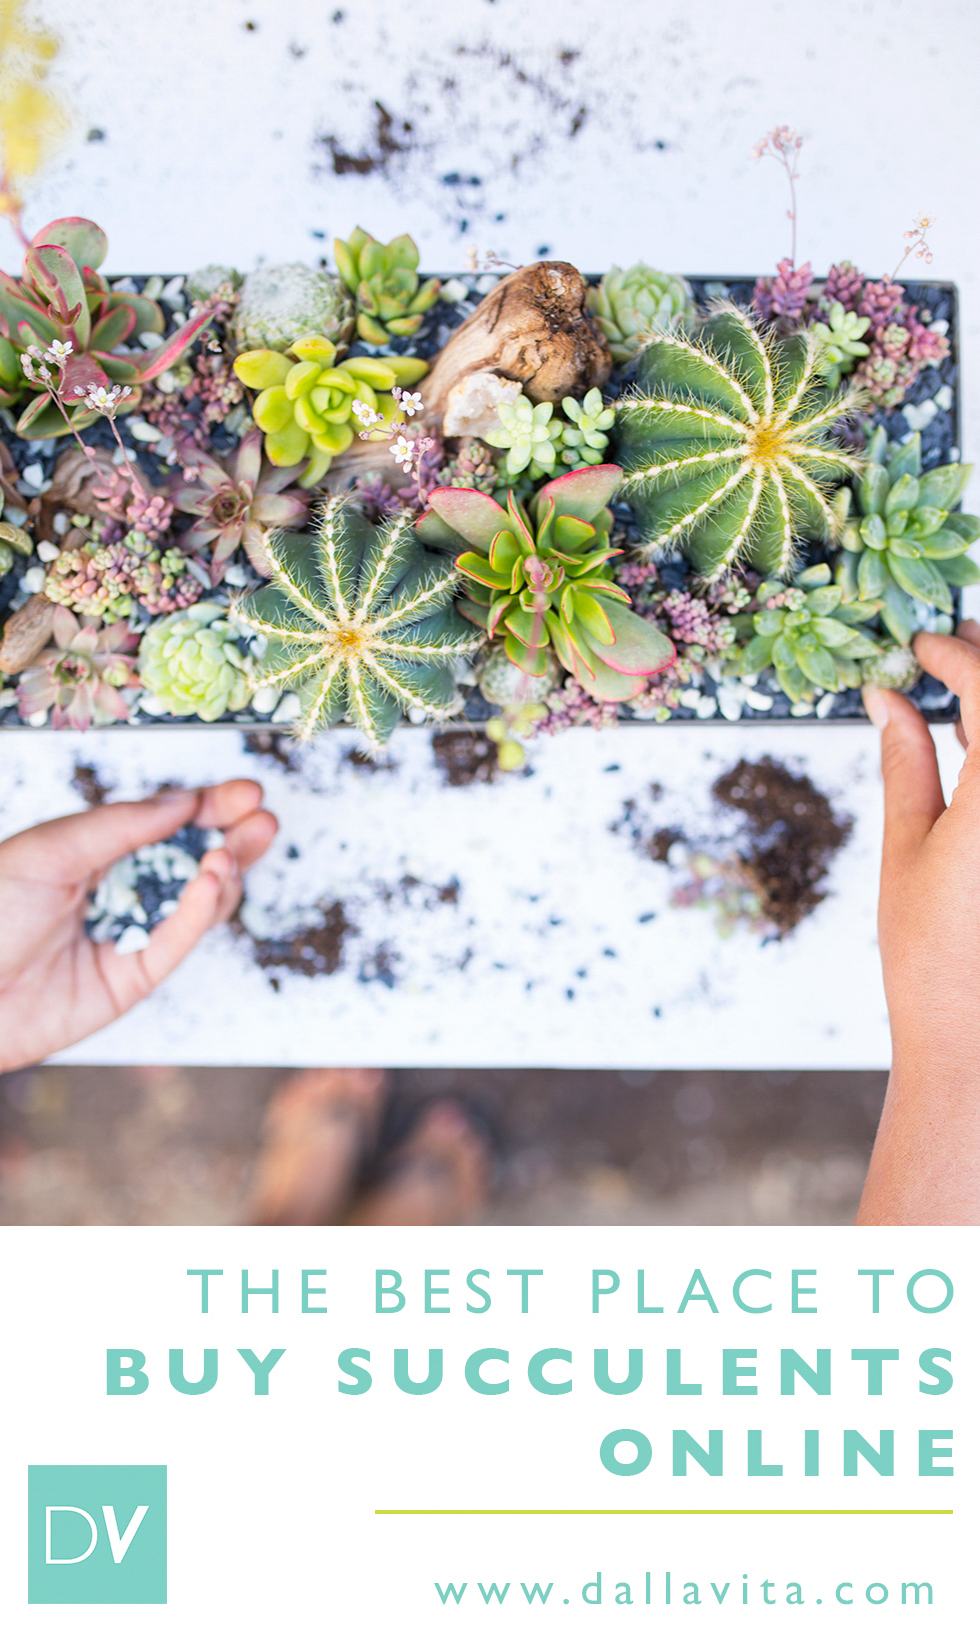 The Best Place to Buy Beautiful Succulents Online - Dalla Vita